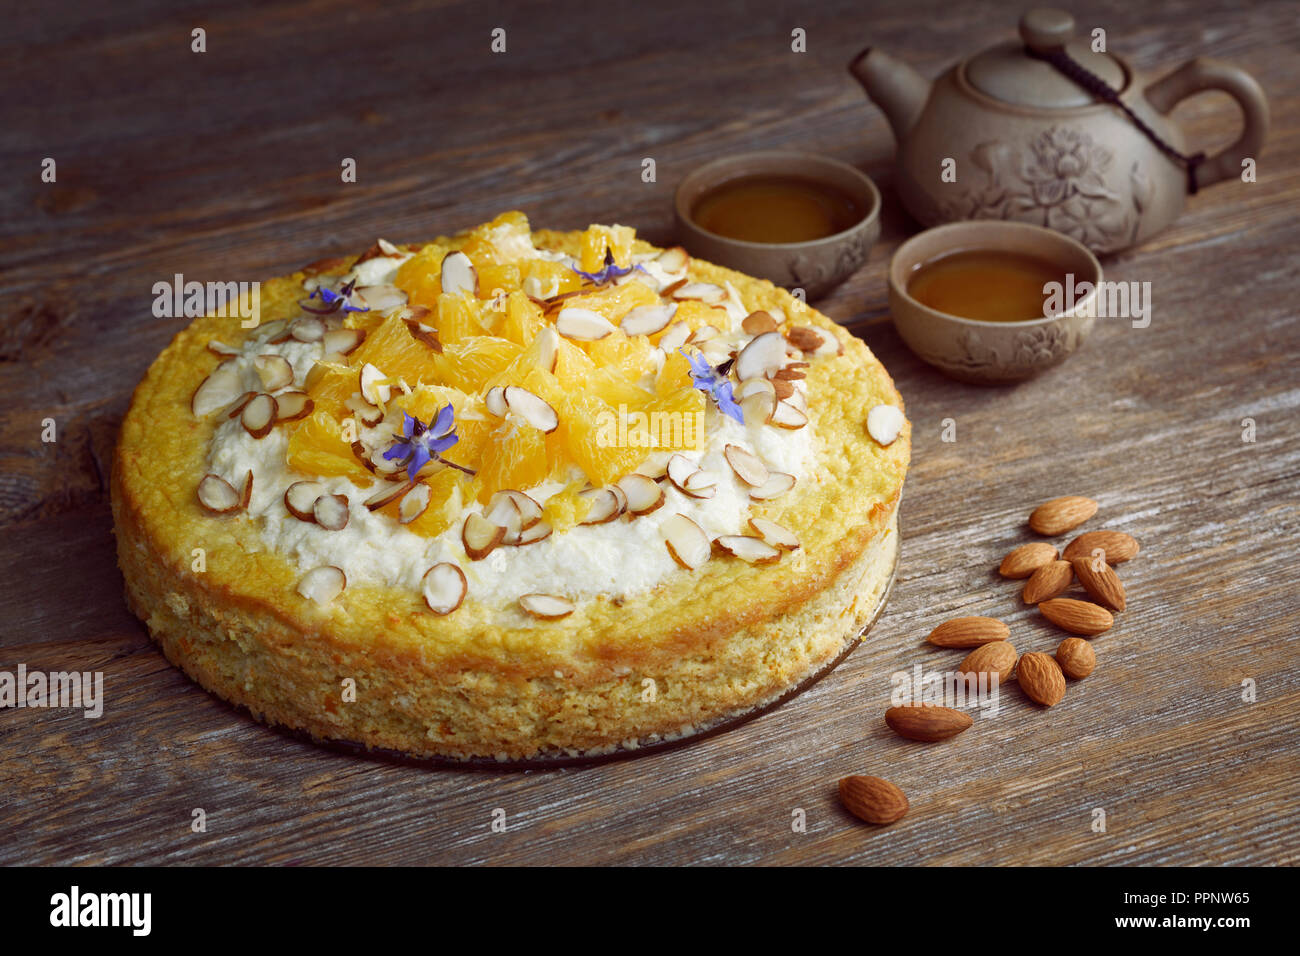 Healthy home-made flourless, sugar-free, dairy-free vegan cake made of almond flour, oranges and coconut, food still life with a - Stock Image